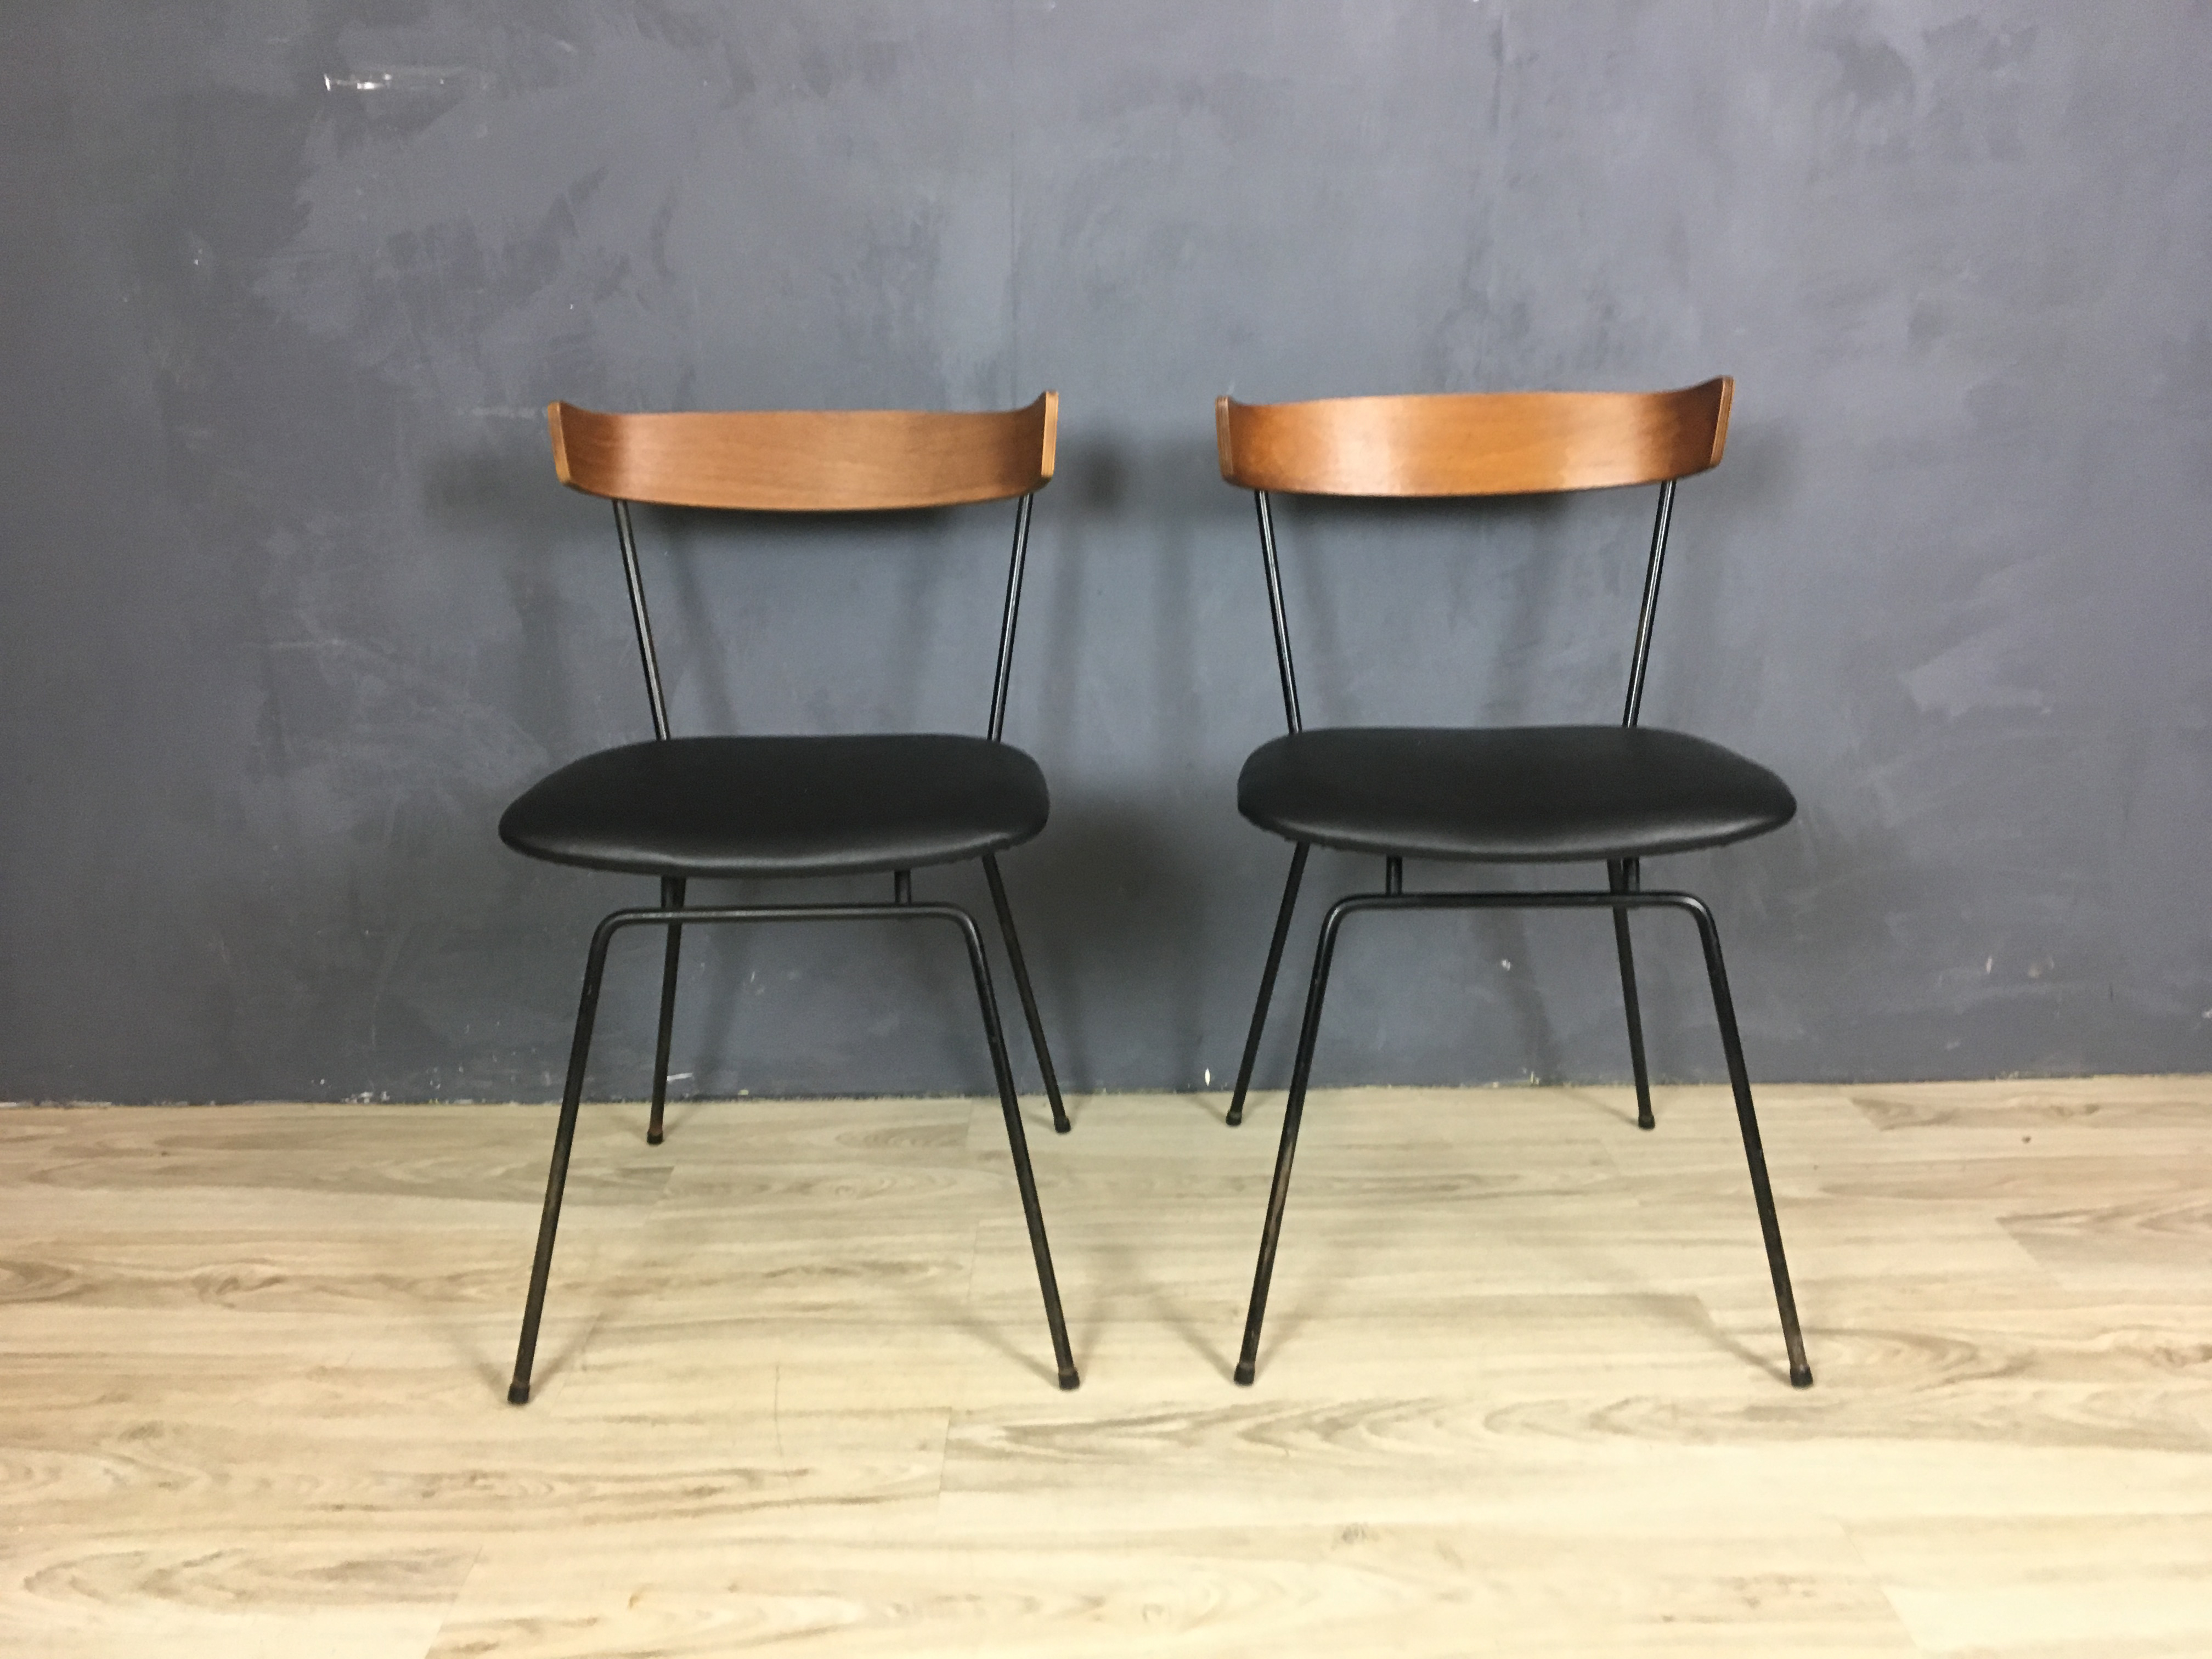 Pair of Iron and Wood Chairs by Clifford Pascoe